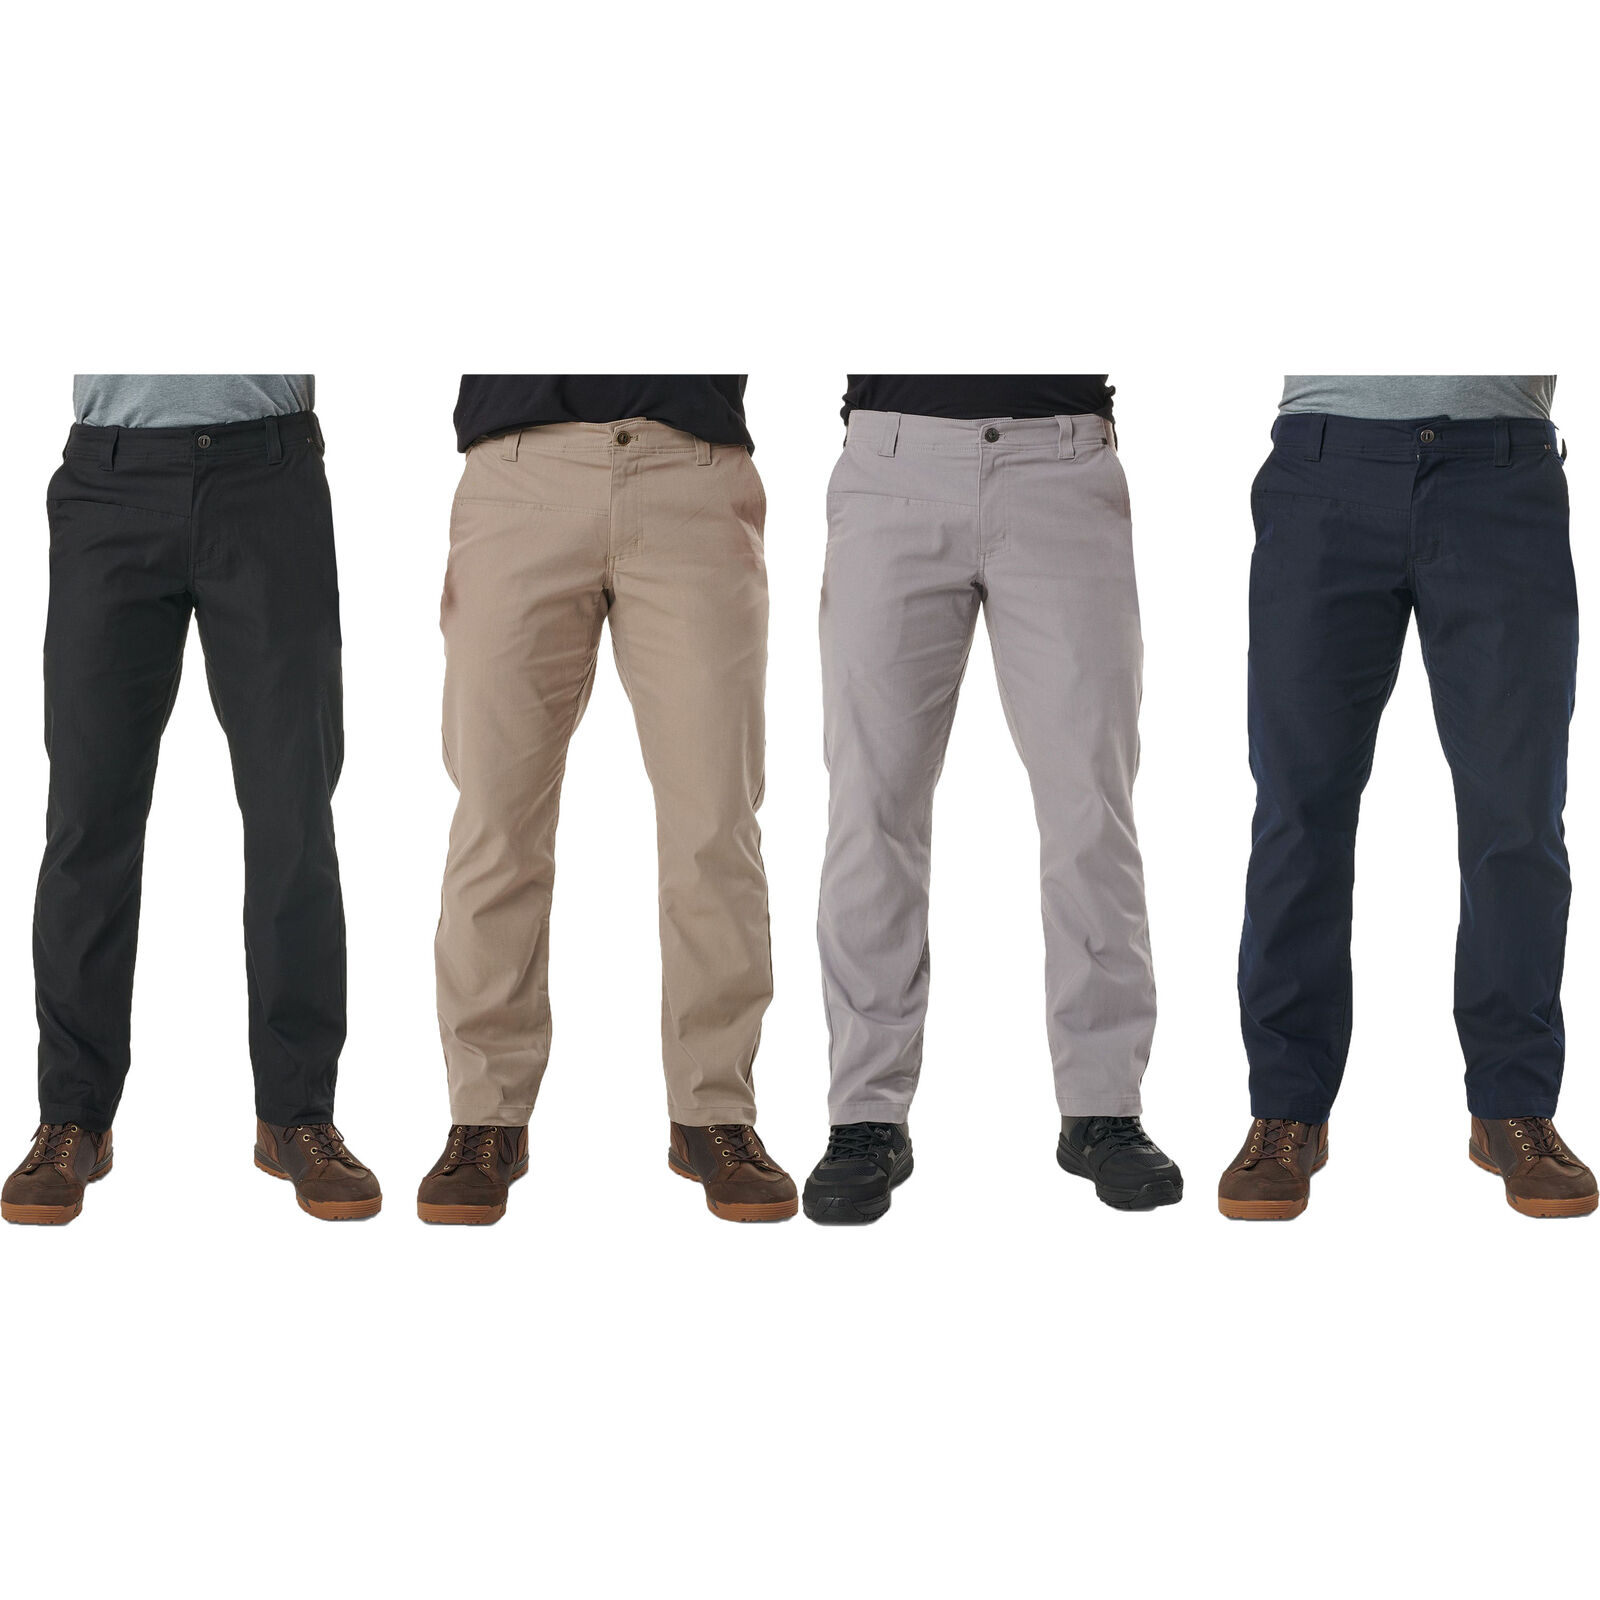 5.11 Tactical Men's Edge  no  Pants, Style 74481, Waist 28-44, Inseam 30-36  timeless classic